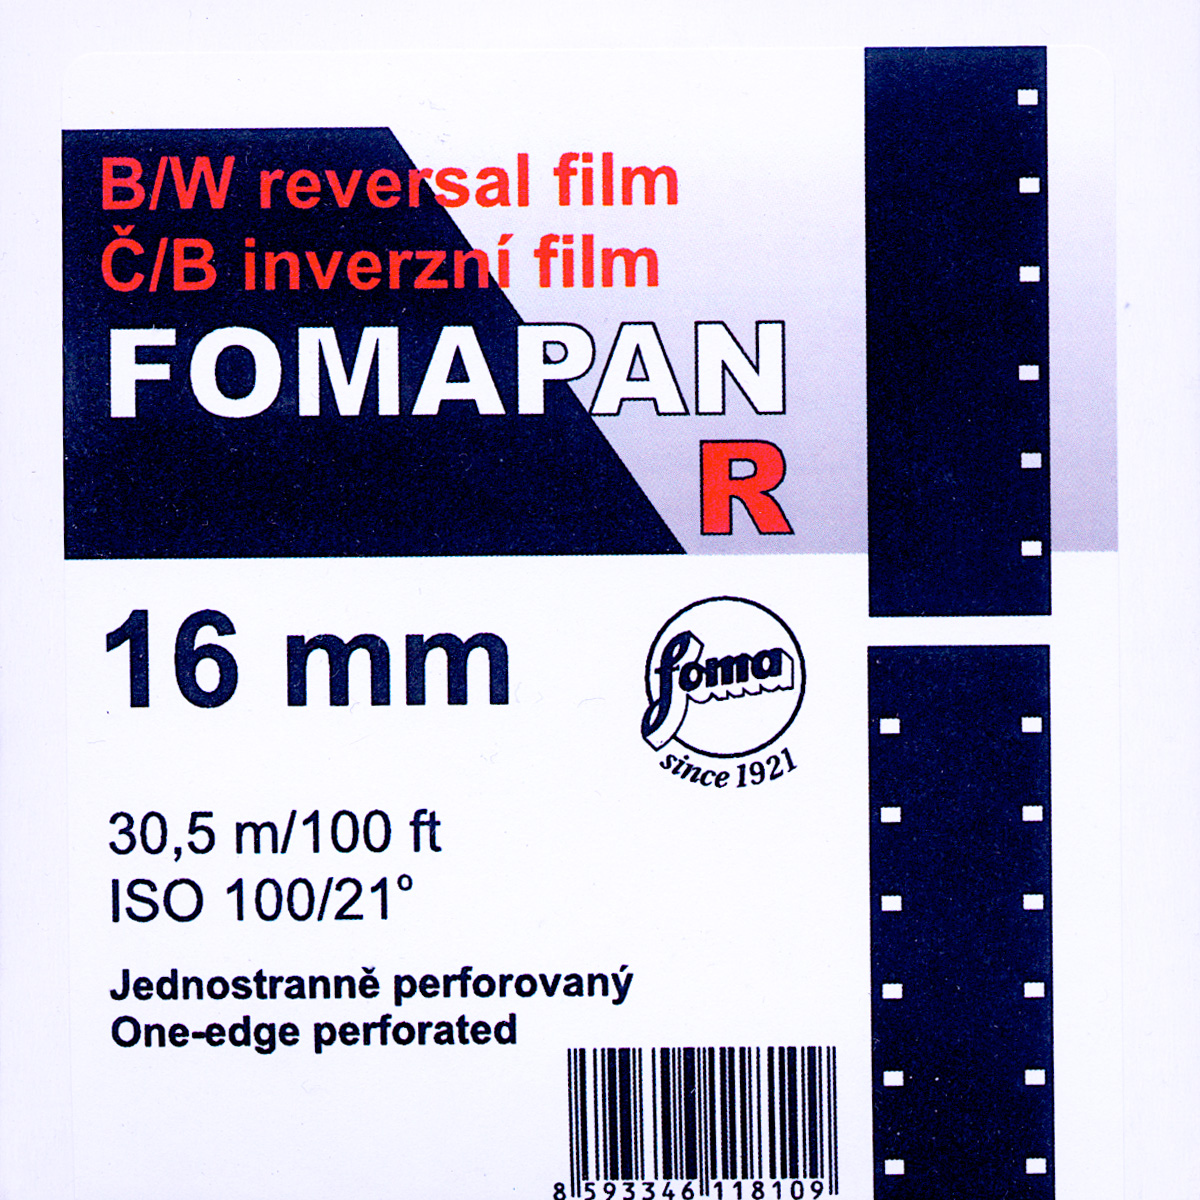 FOMA PAN 100D/100R   B&W 16MM REVERSAL FILM $40.00 - 100ft DAYLIGHT SPOOL $155.00 - 400FT ON CORE